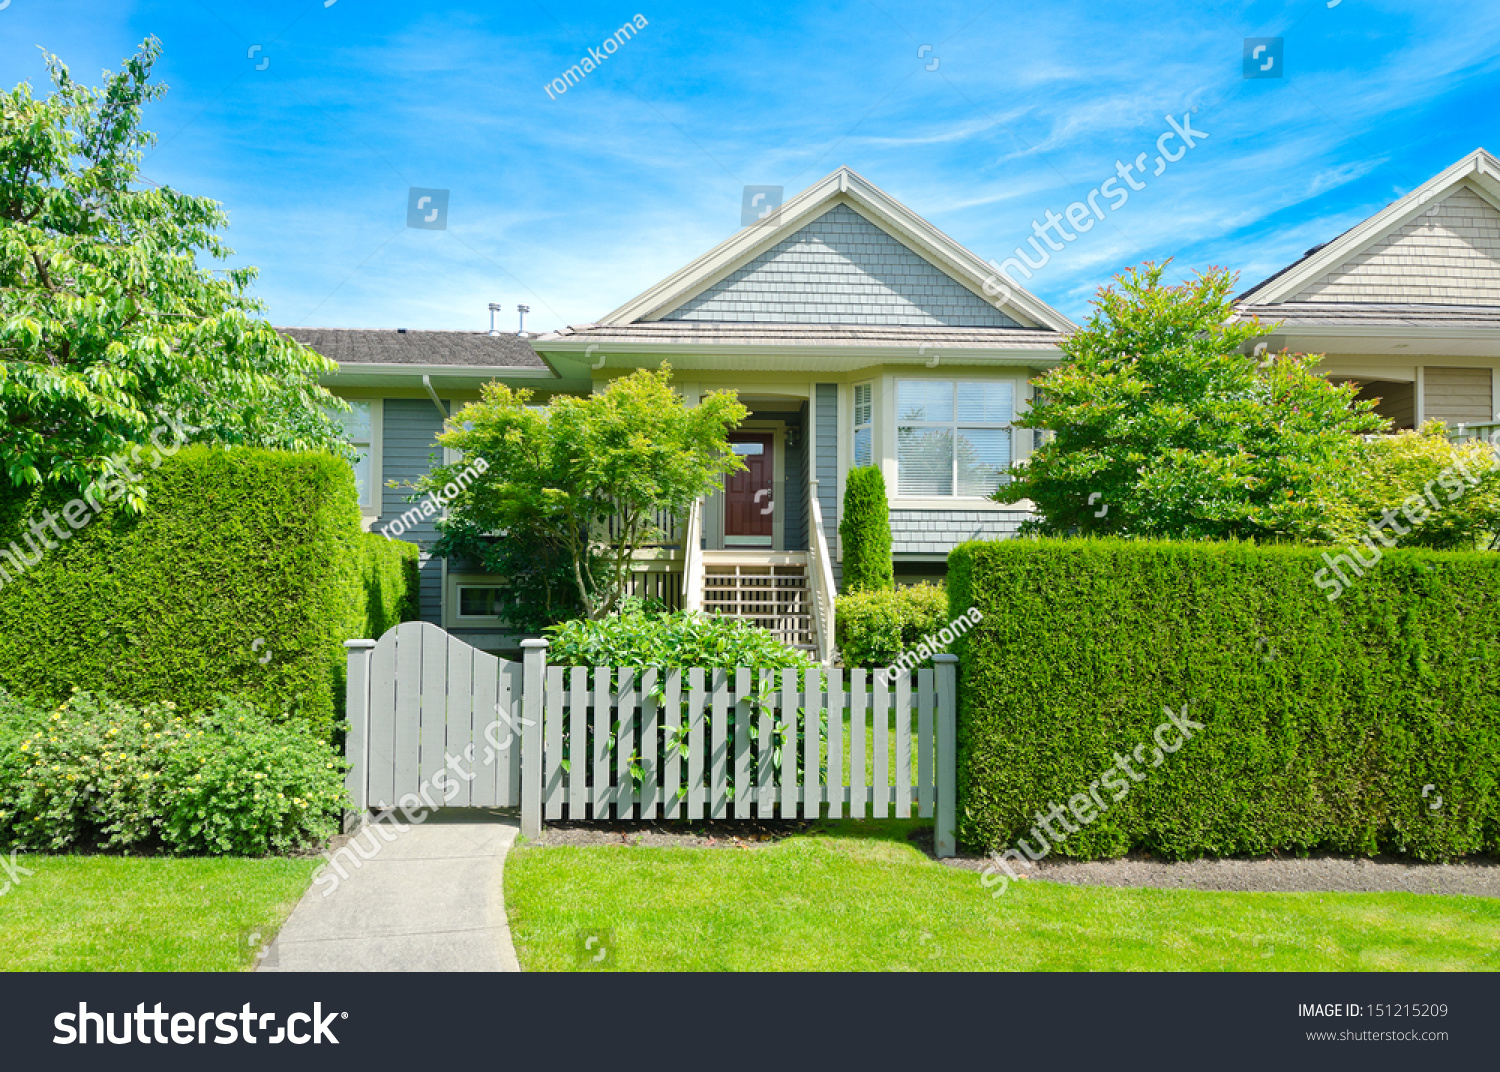 Nice Looking House Behind Wooden Nicely Stock Photo